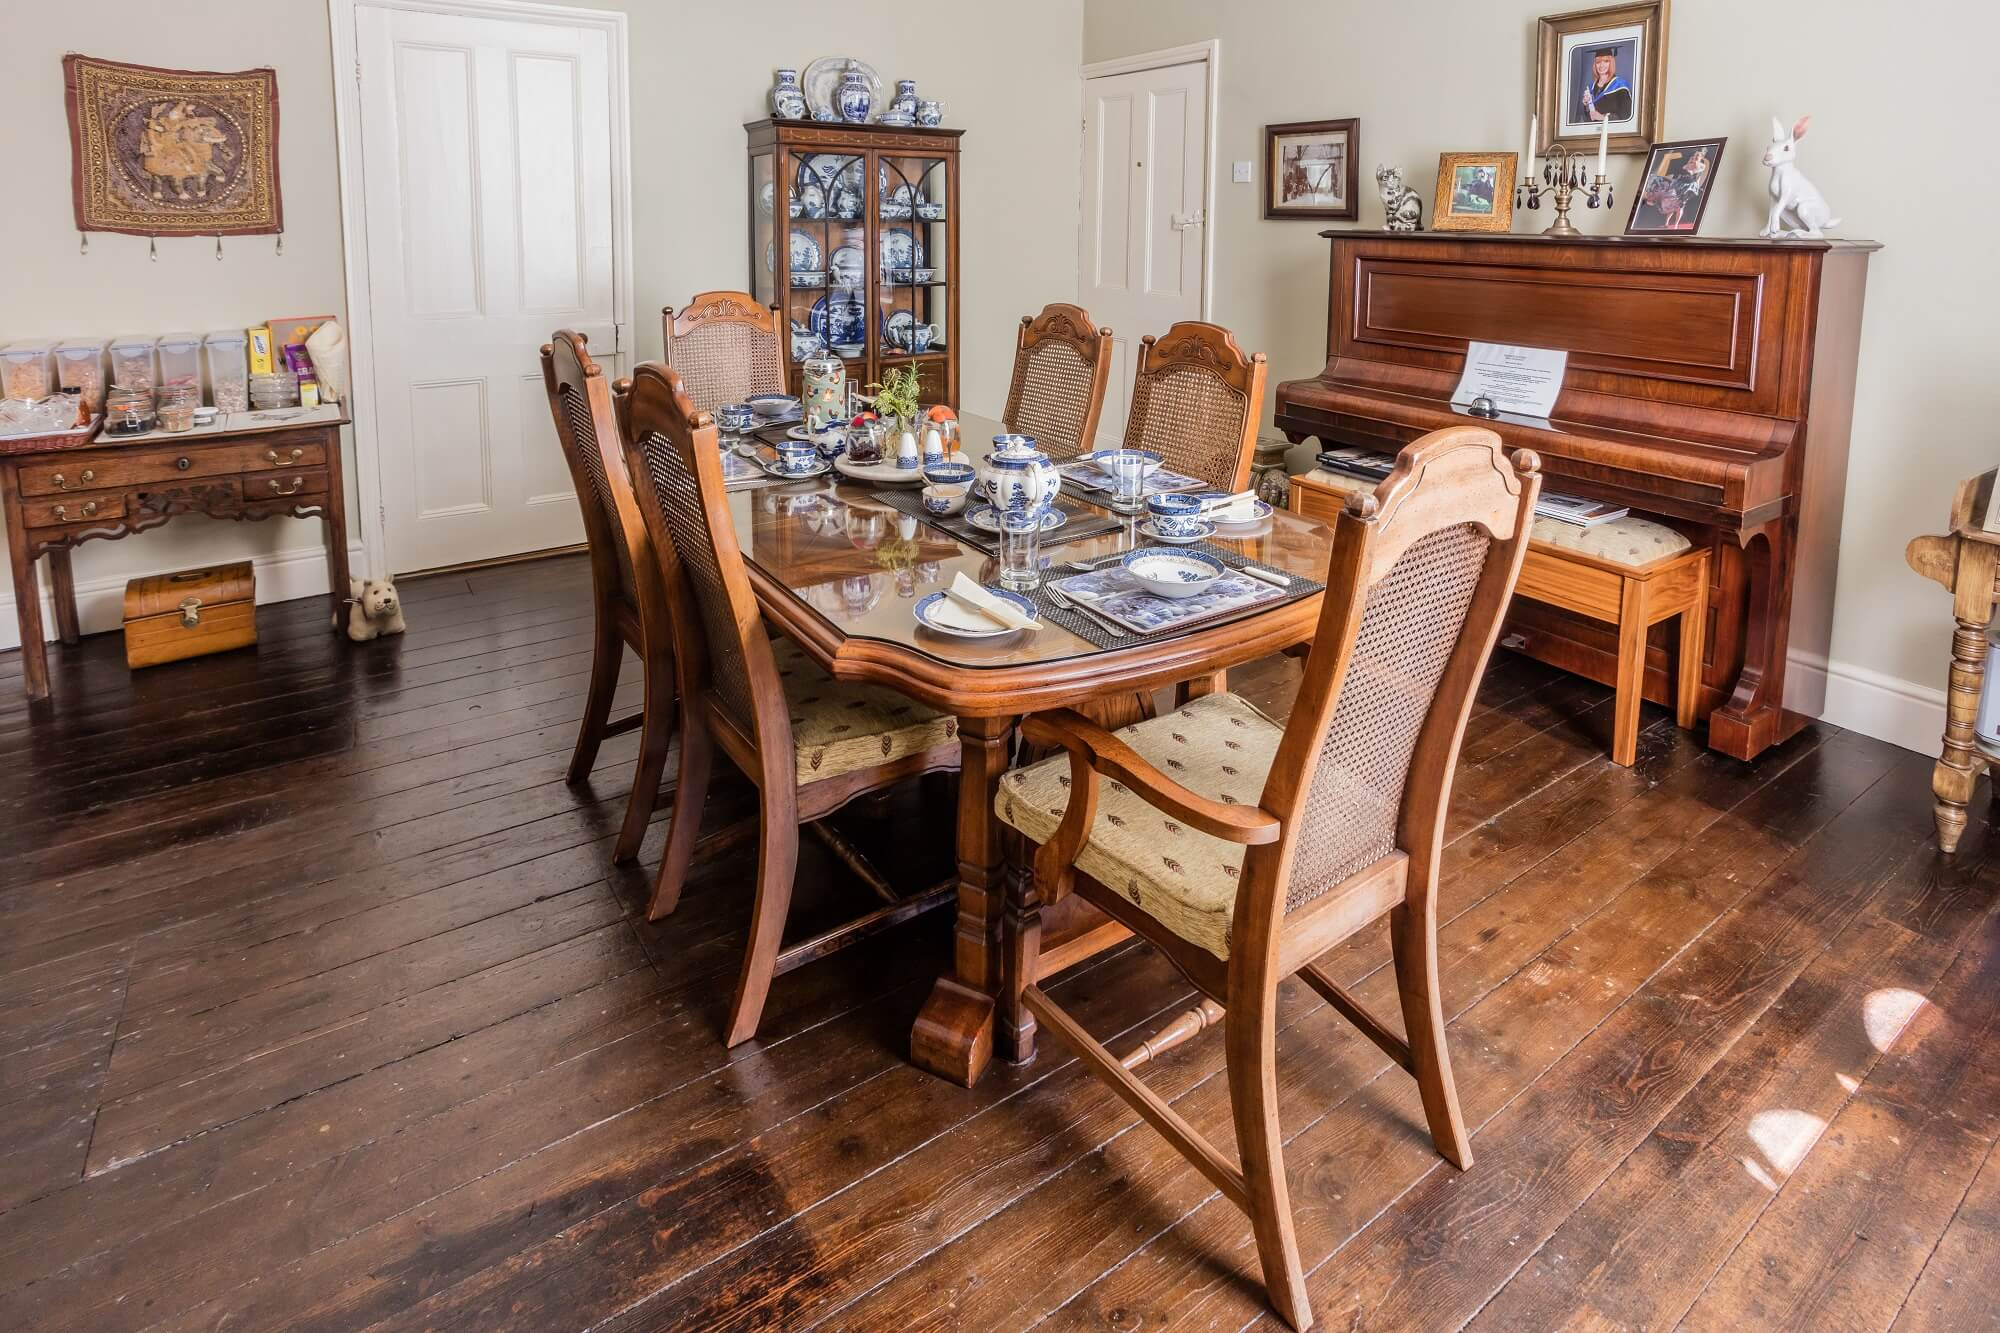 Dining room in Redhouse Farm Bed & Breakfast near Lincoln